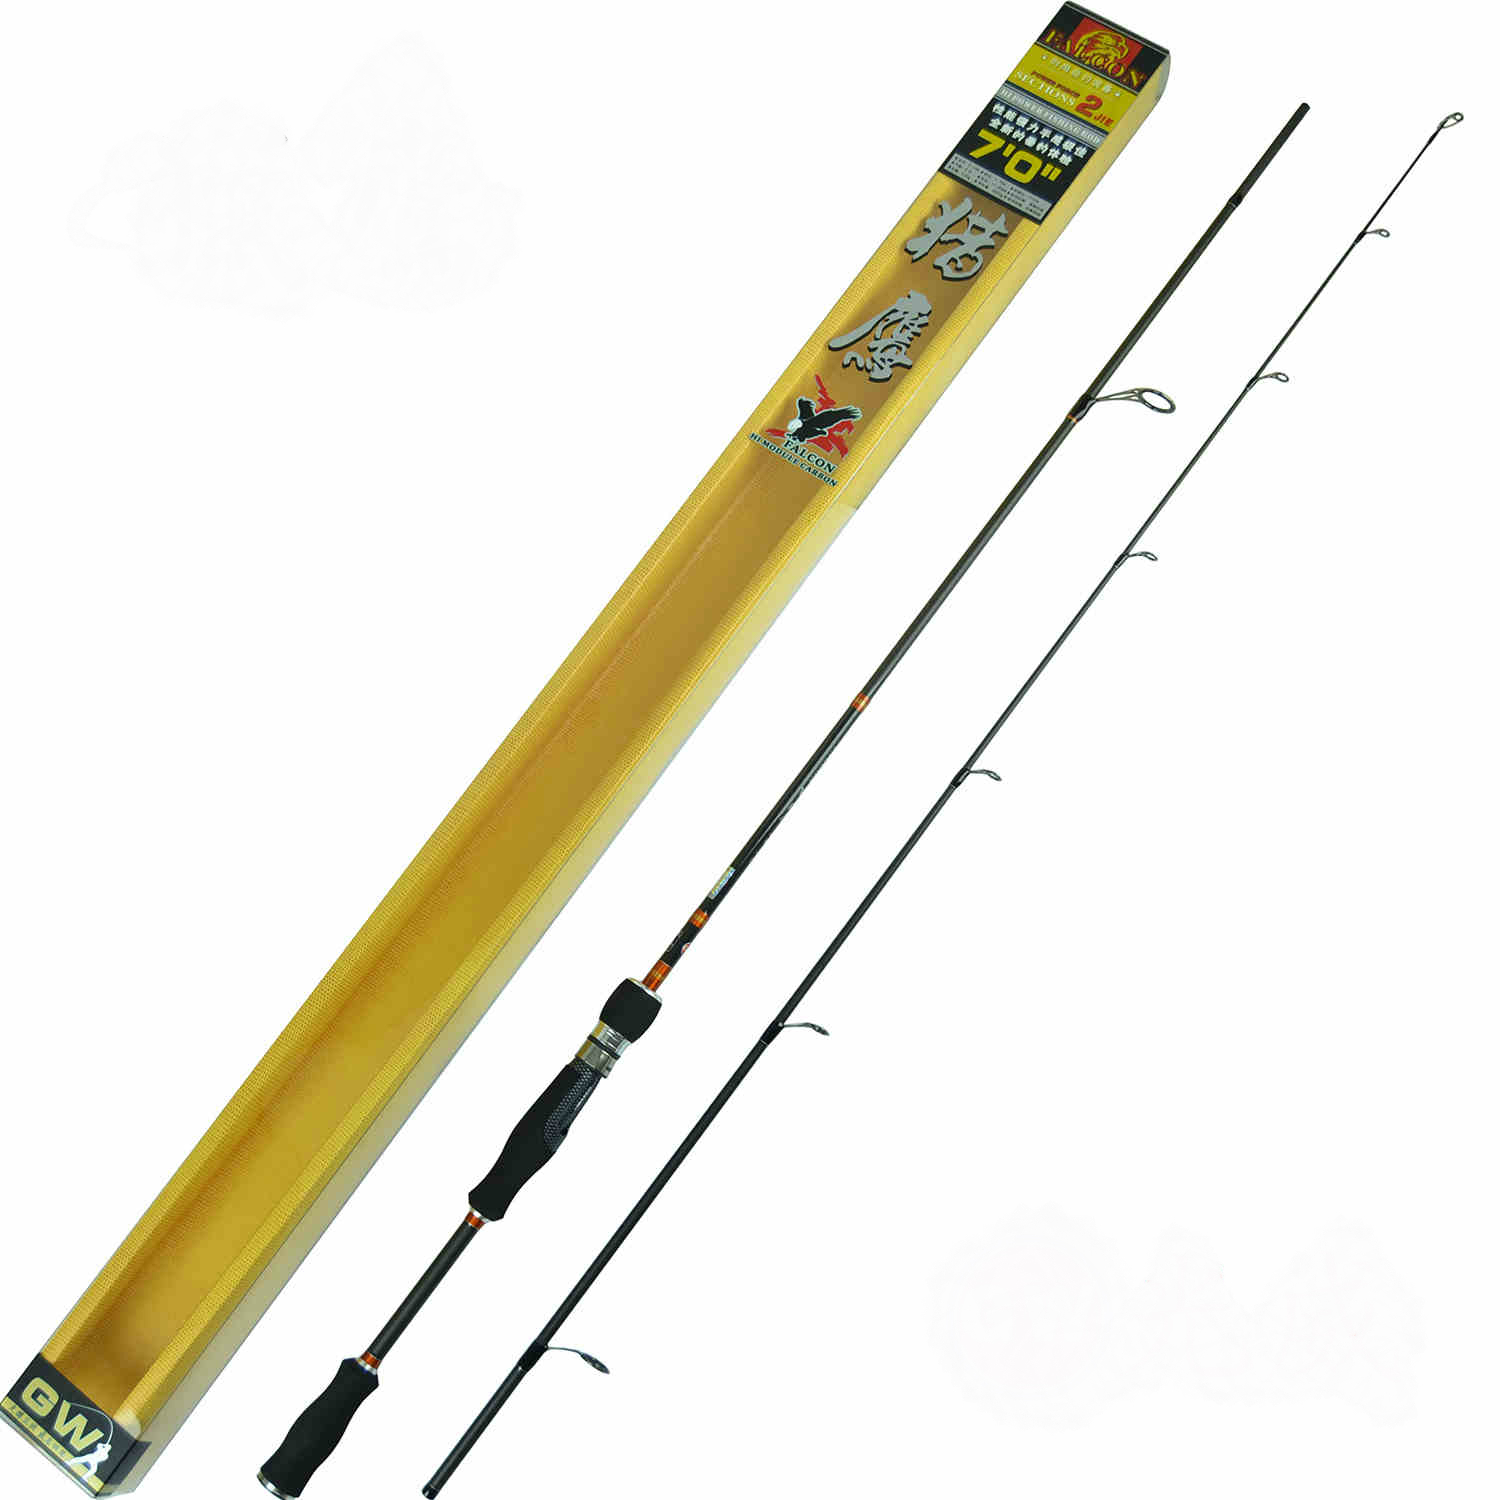 Spinning Lure Rod 1.83/1.97/2.1m Hard Carbon 2 Sections Lure Fishing Rod lure fishing rod brave lure rod spinning